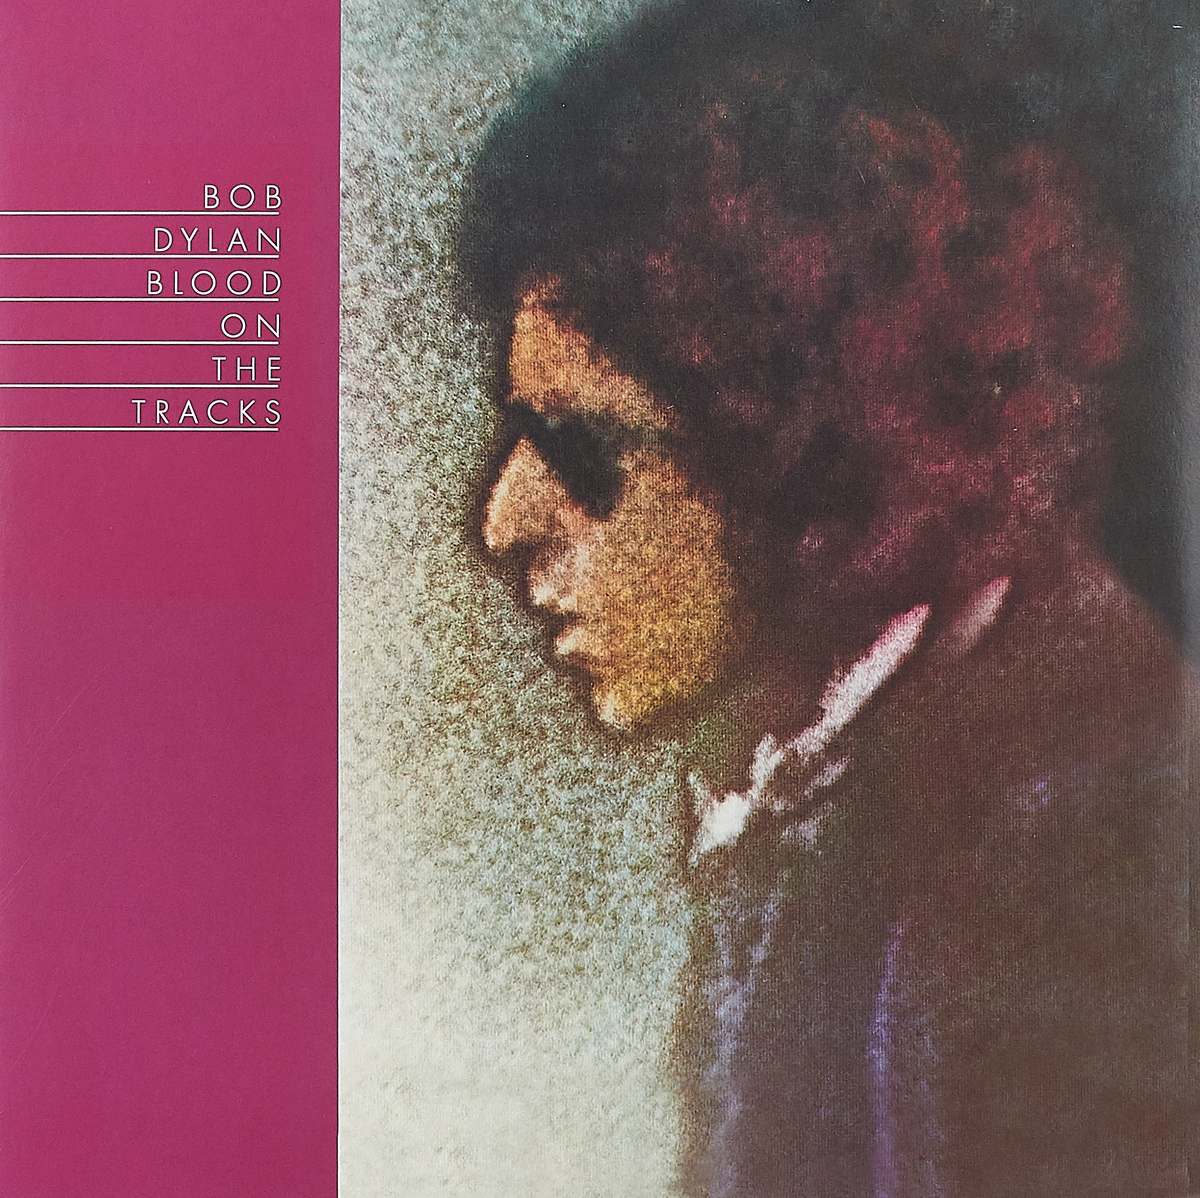 Боб Дилан Bob Dylan. Blood On The Tracks (LP) боб дилан bob dylan and the band bob dylan the complete album collection vol 1 47 cd